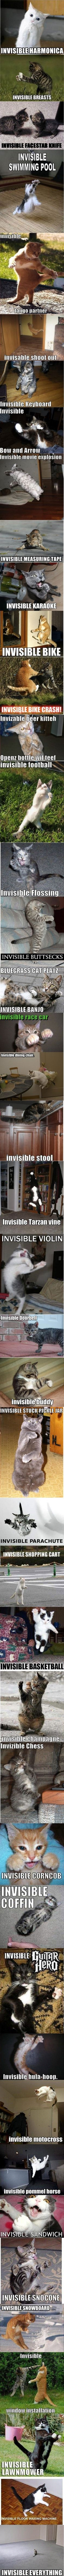 LMAO at the invisible world of cats